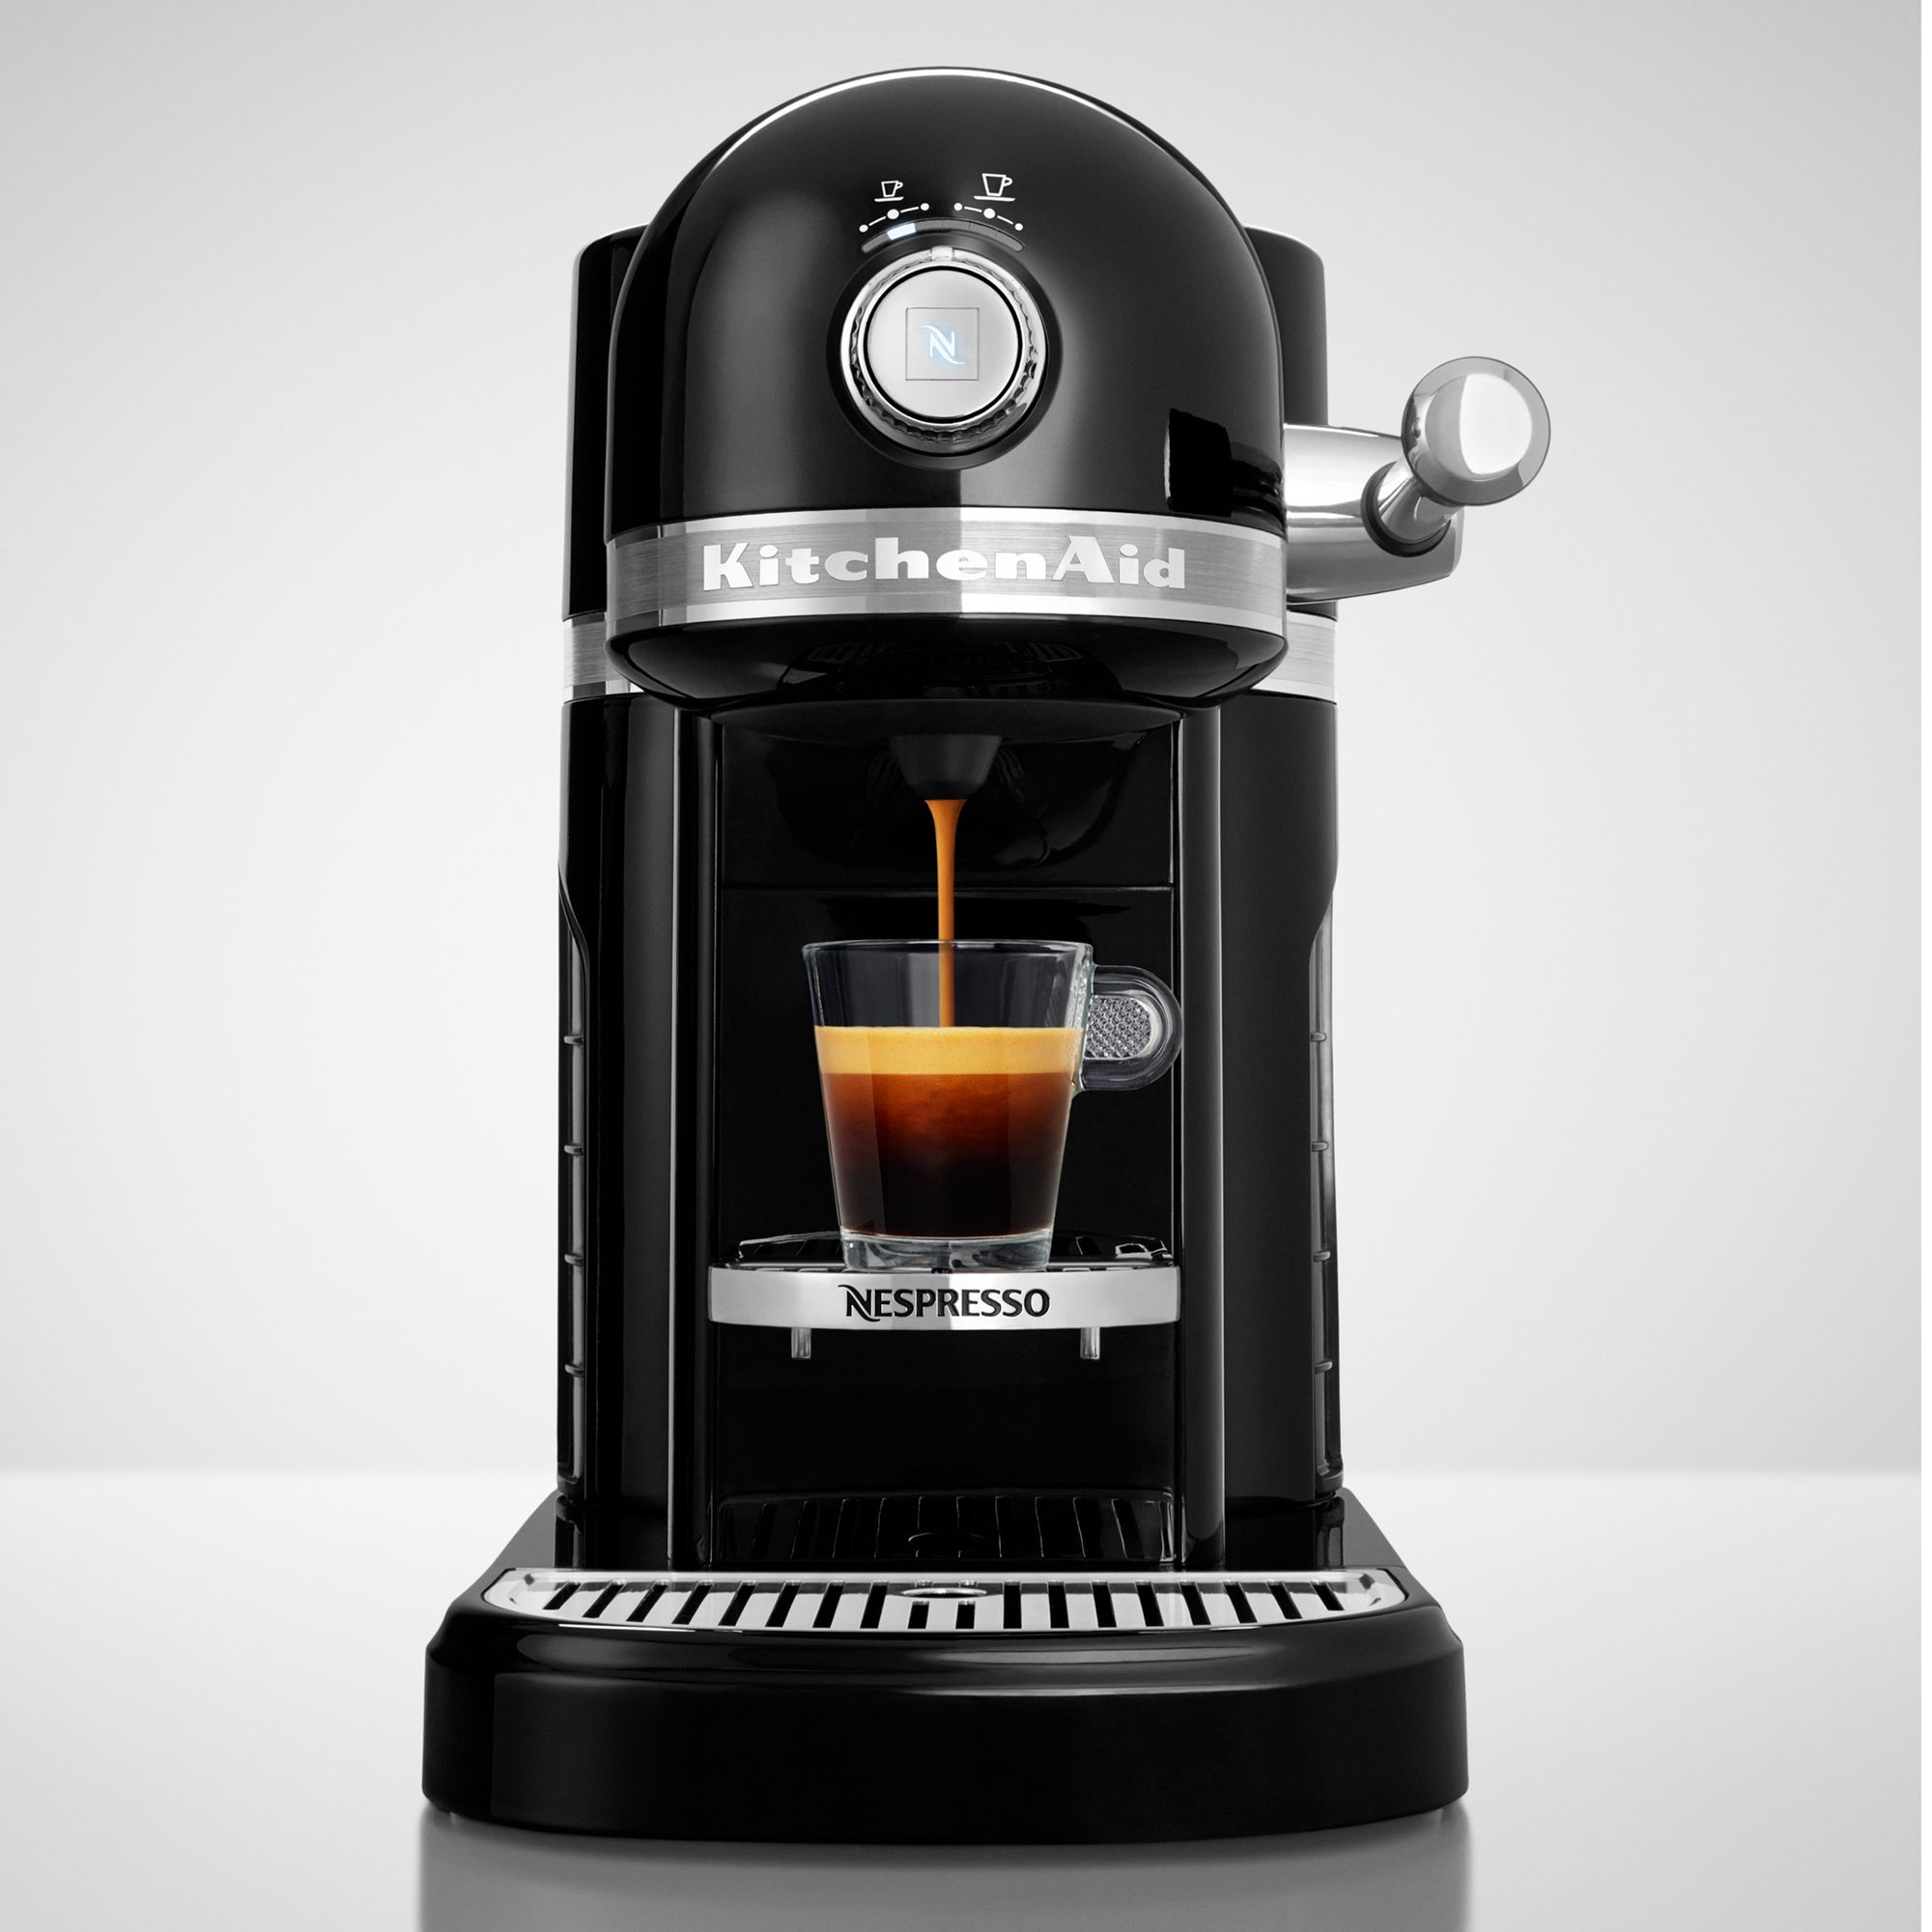 John Lewis Hob Coffee Maker : Buy Nespresso Artisan Coffee Machine by KitchenAid John Lewis